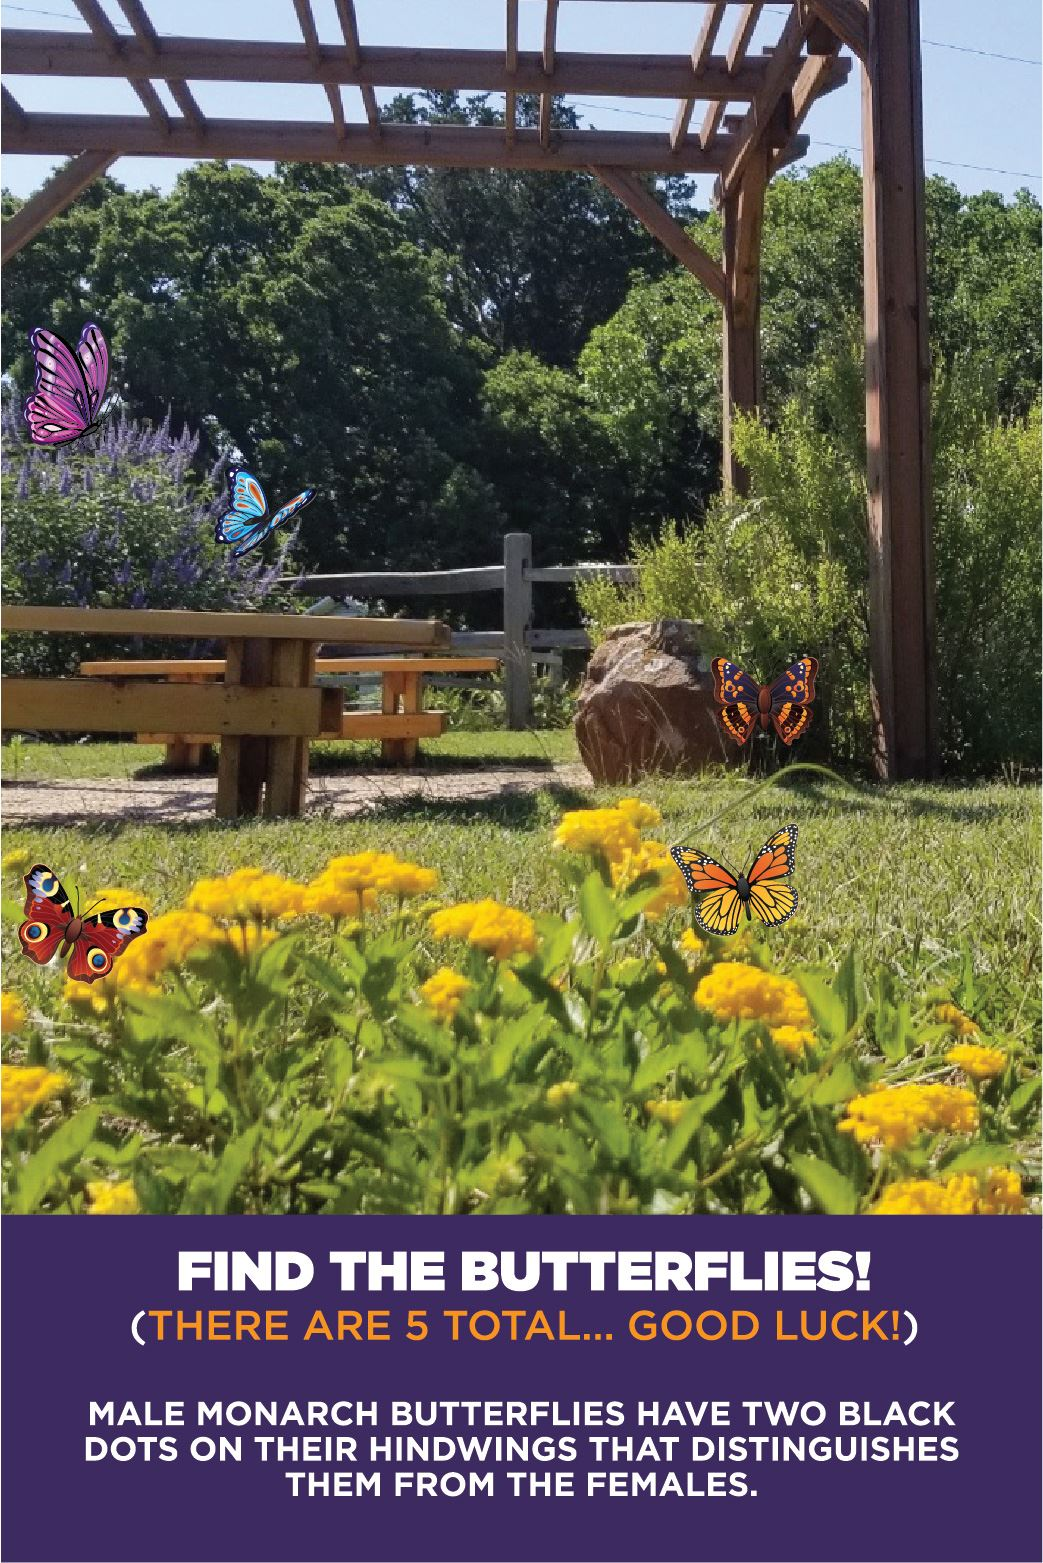 2020-Russell-Farm-Butterfly-Hunt-FB-VERTICAL-01-04